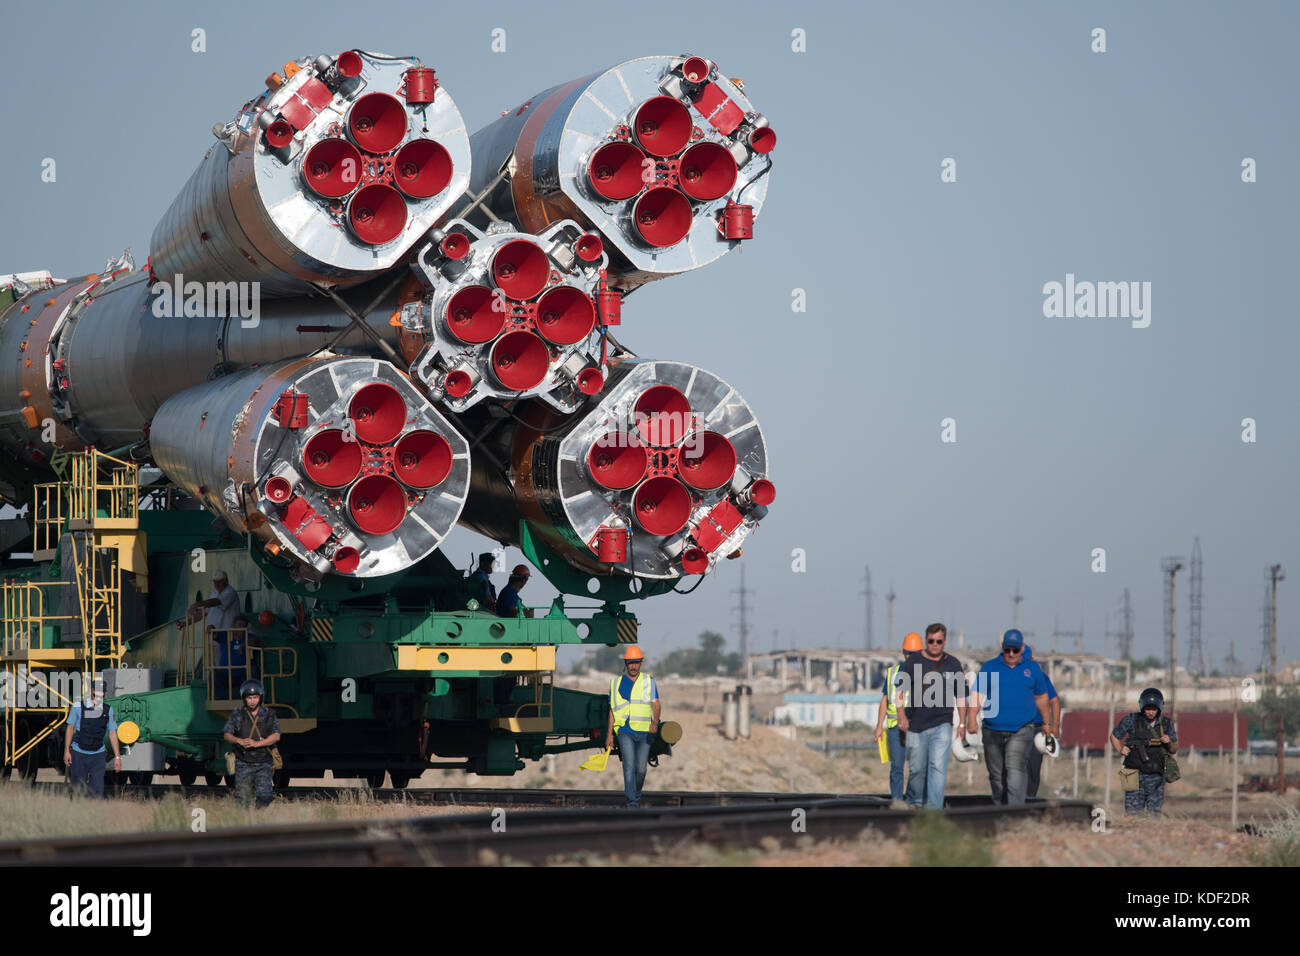 A train rolls the Soyuz MS-05 spacecraft to the Baikonur Cosmodrome launch pad in preparation for the Expedition - Stock Image